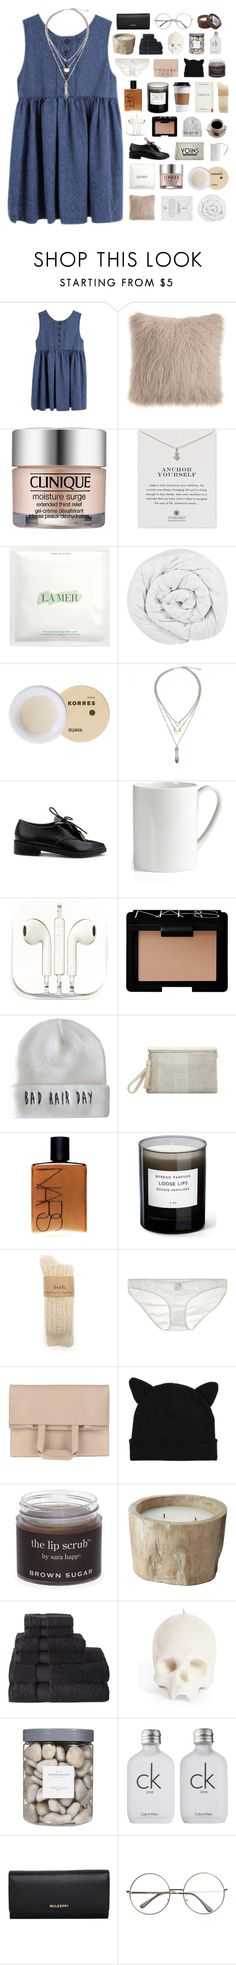 """collab with gabriella 